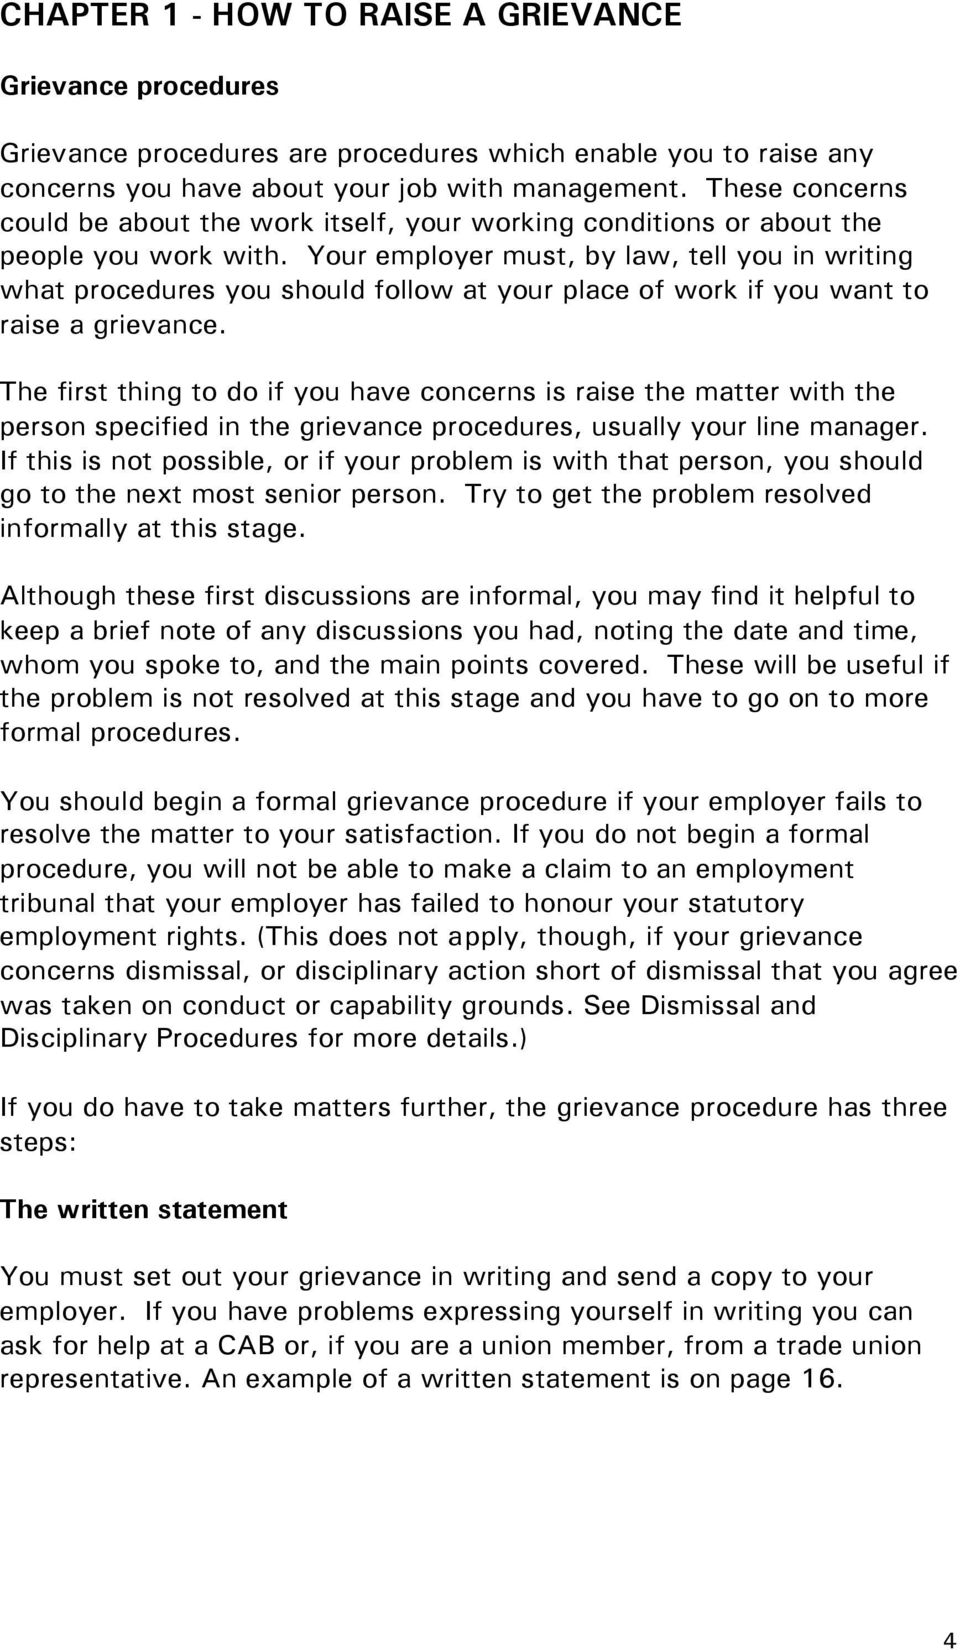 Your employer must, by law, tell you in writing what procedures you should follow at your place of work if you want to raise a grievance.